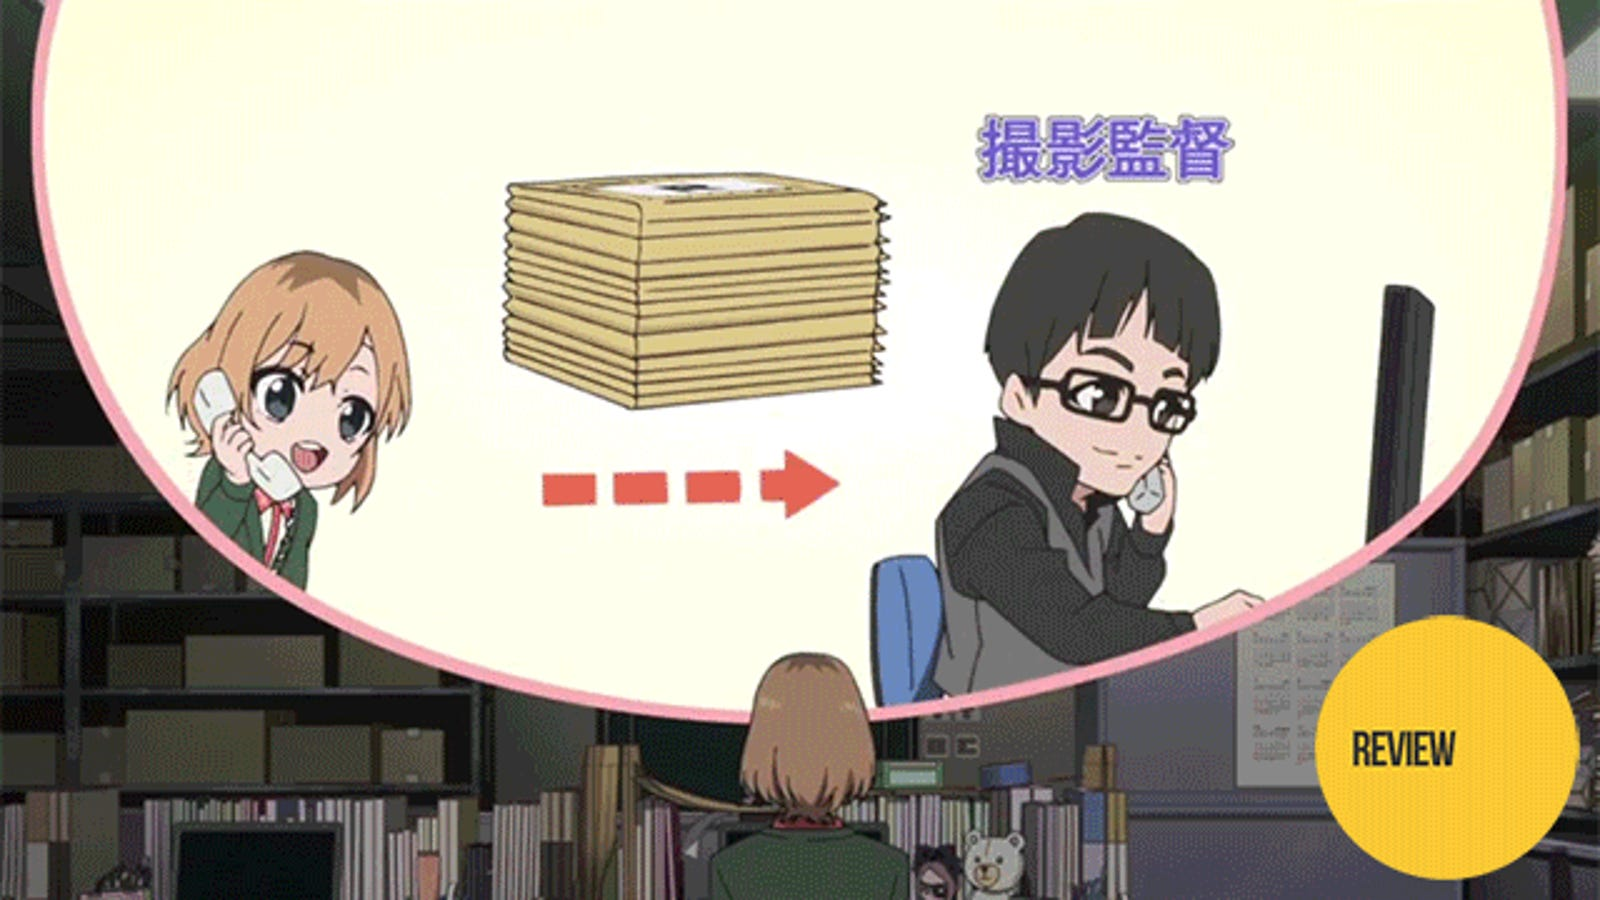 Shirobako is an anime about making anime